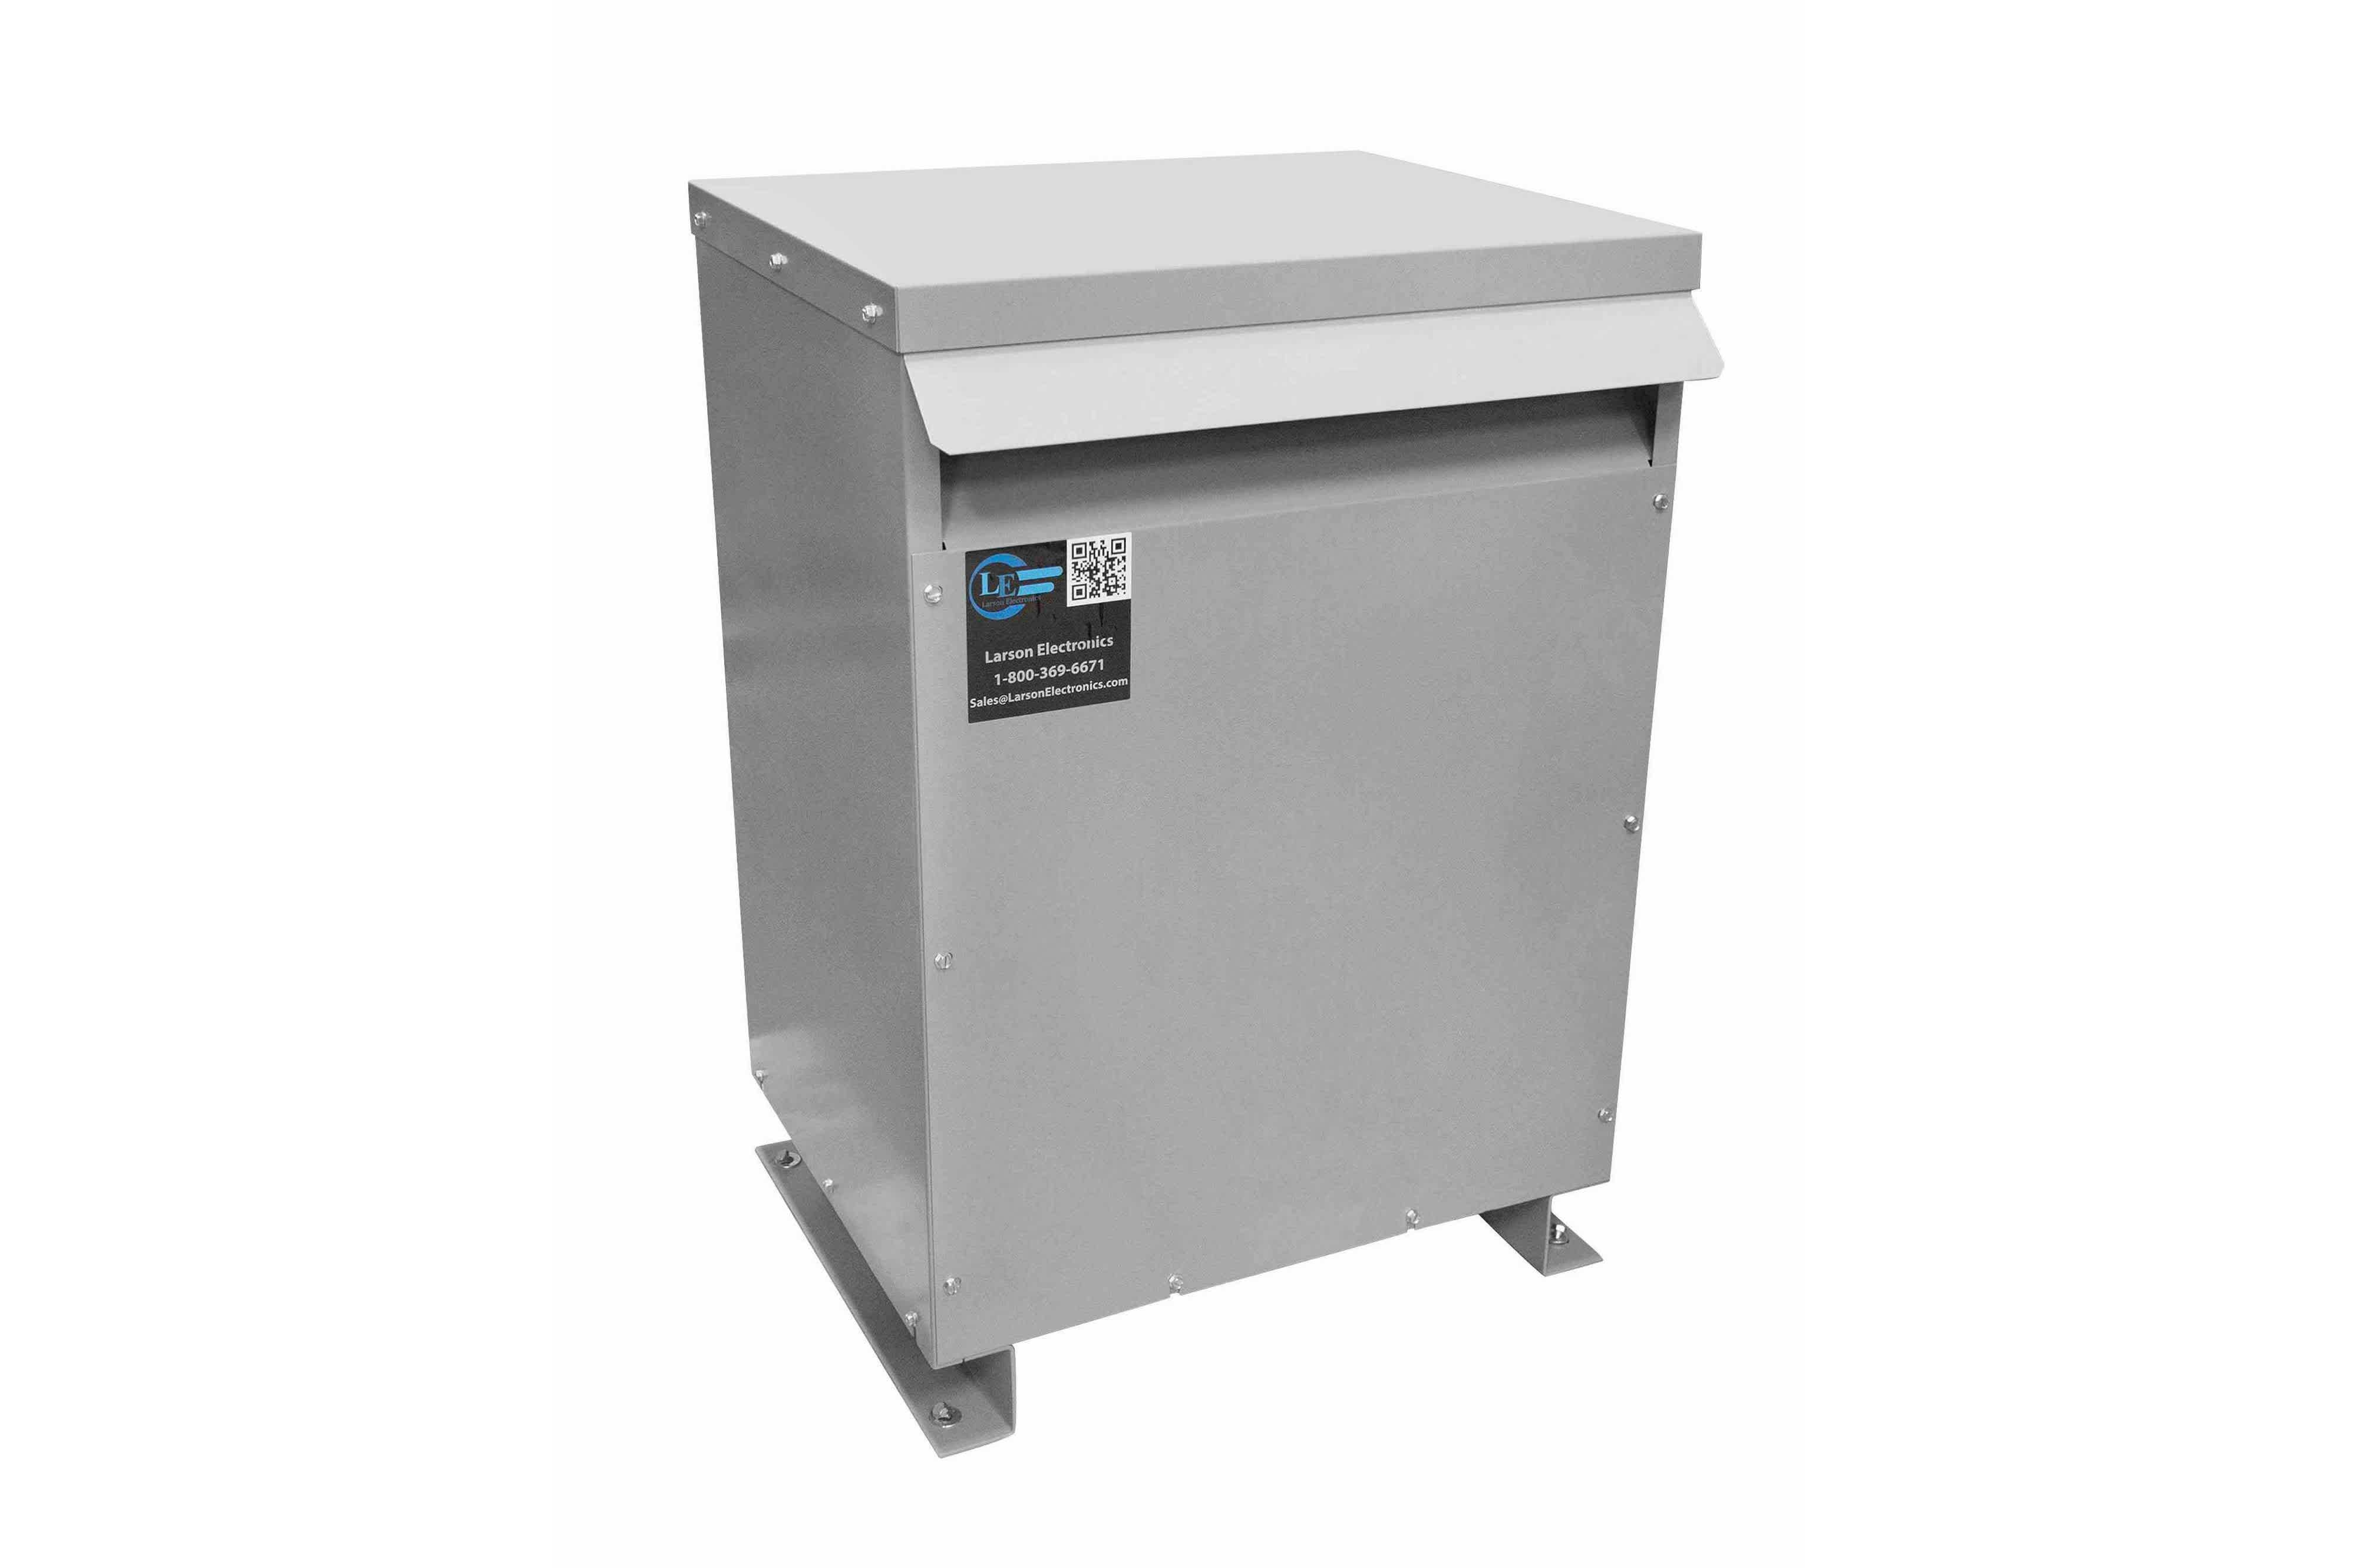 55 kVA 3PH Isolation Transformer, 480V Delta Primary, 380V Delta Secondary, N3R, Ventilated, 60 Hz